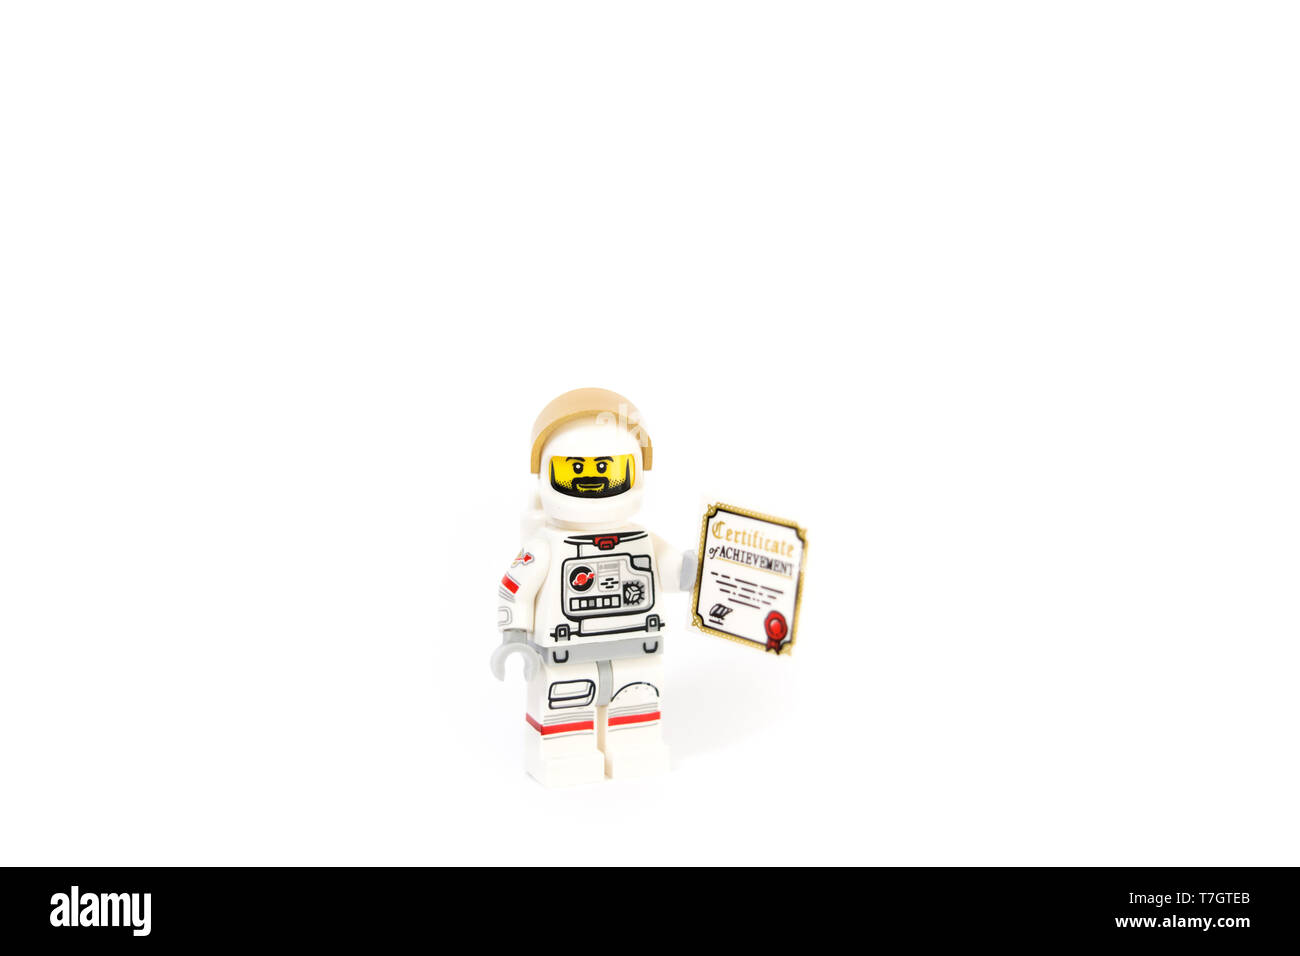 Astronaut holding a certificate of achievement showing his career progression. - Stock Image